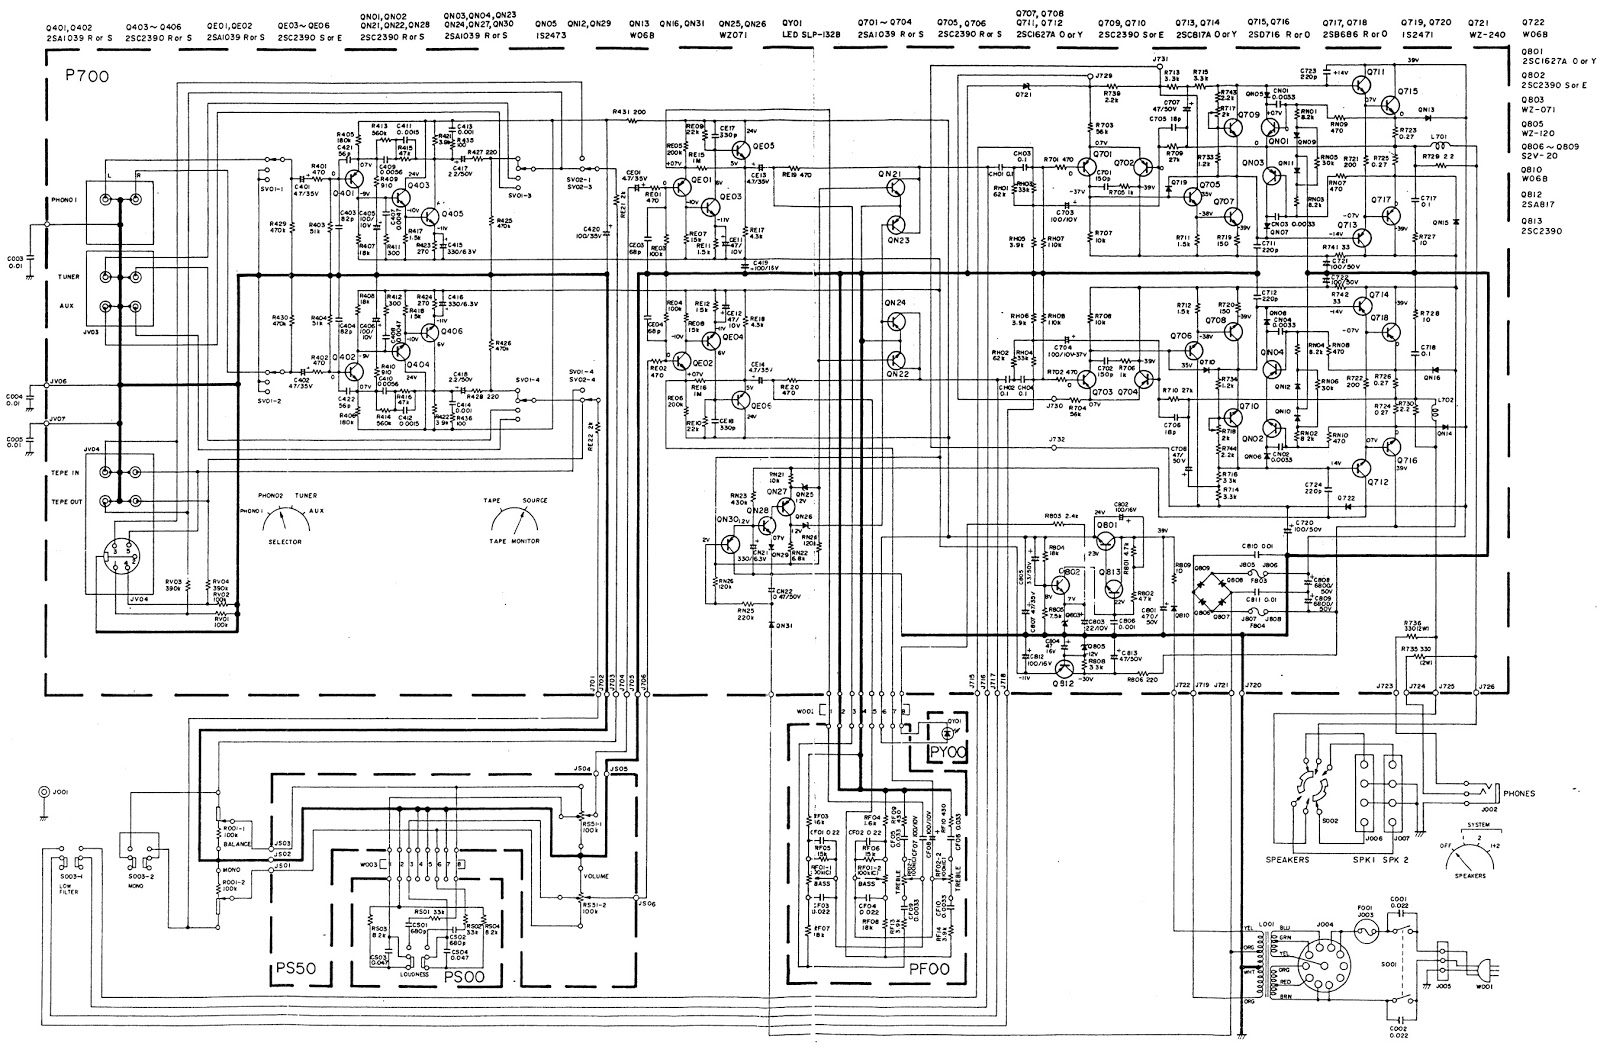 memphis audio wiring diagrams ford 3 8 engine diagram jbl marine stereo and